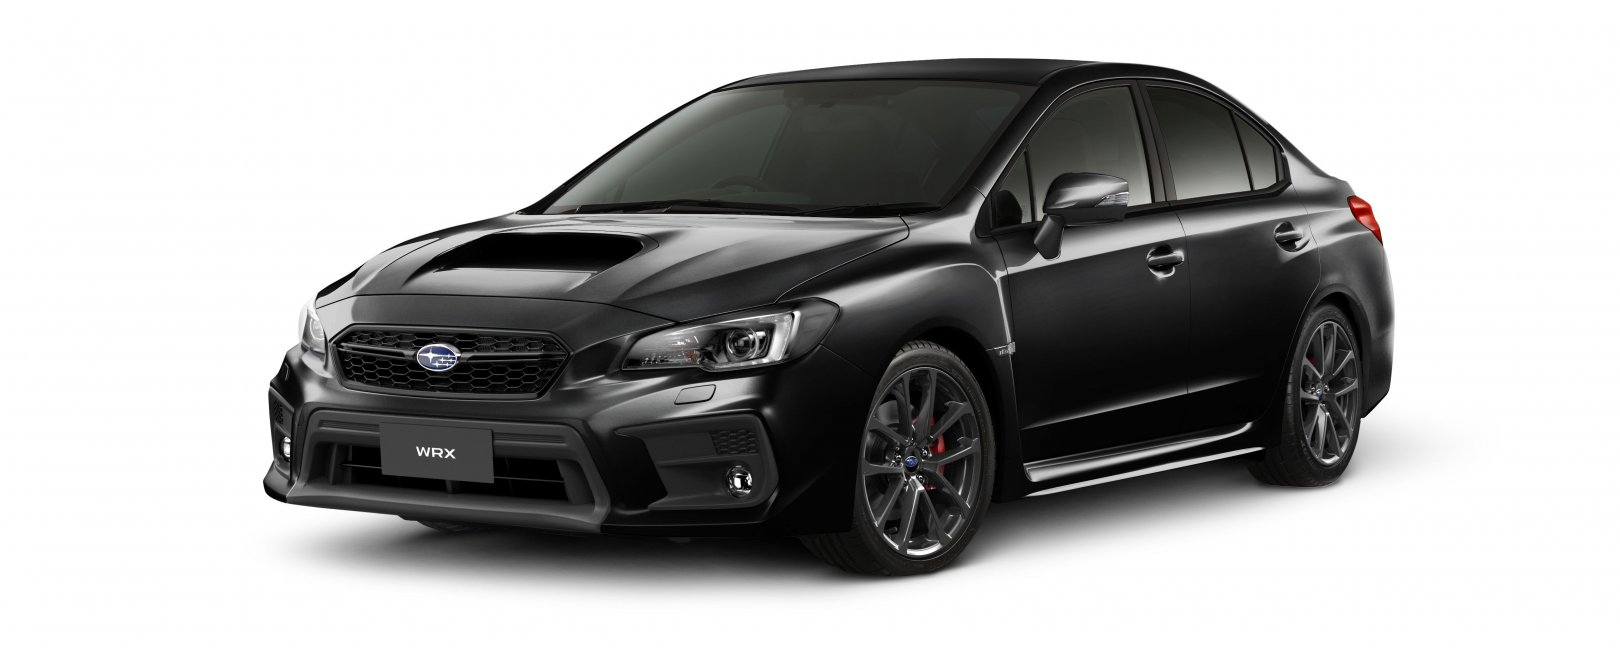 WRX Crystal Black